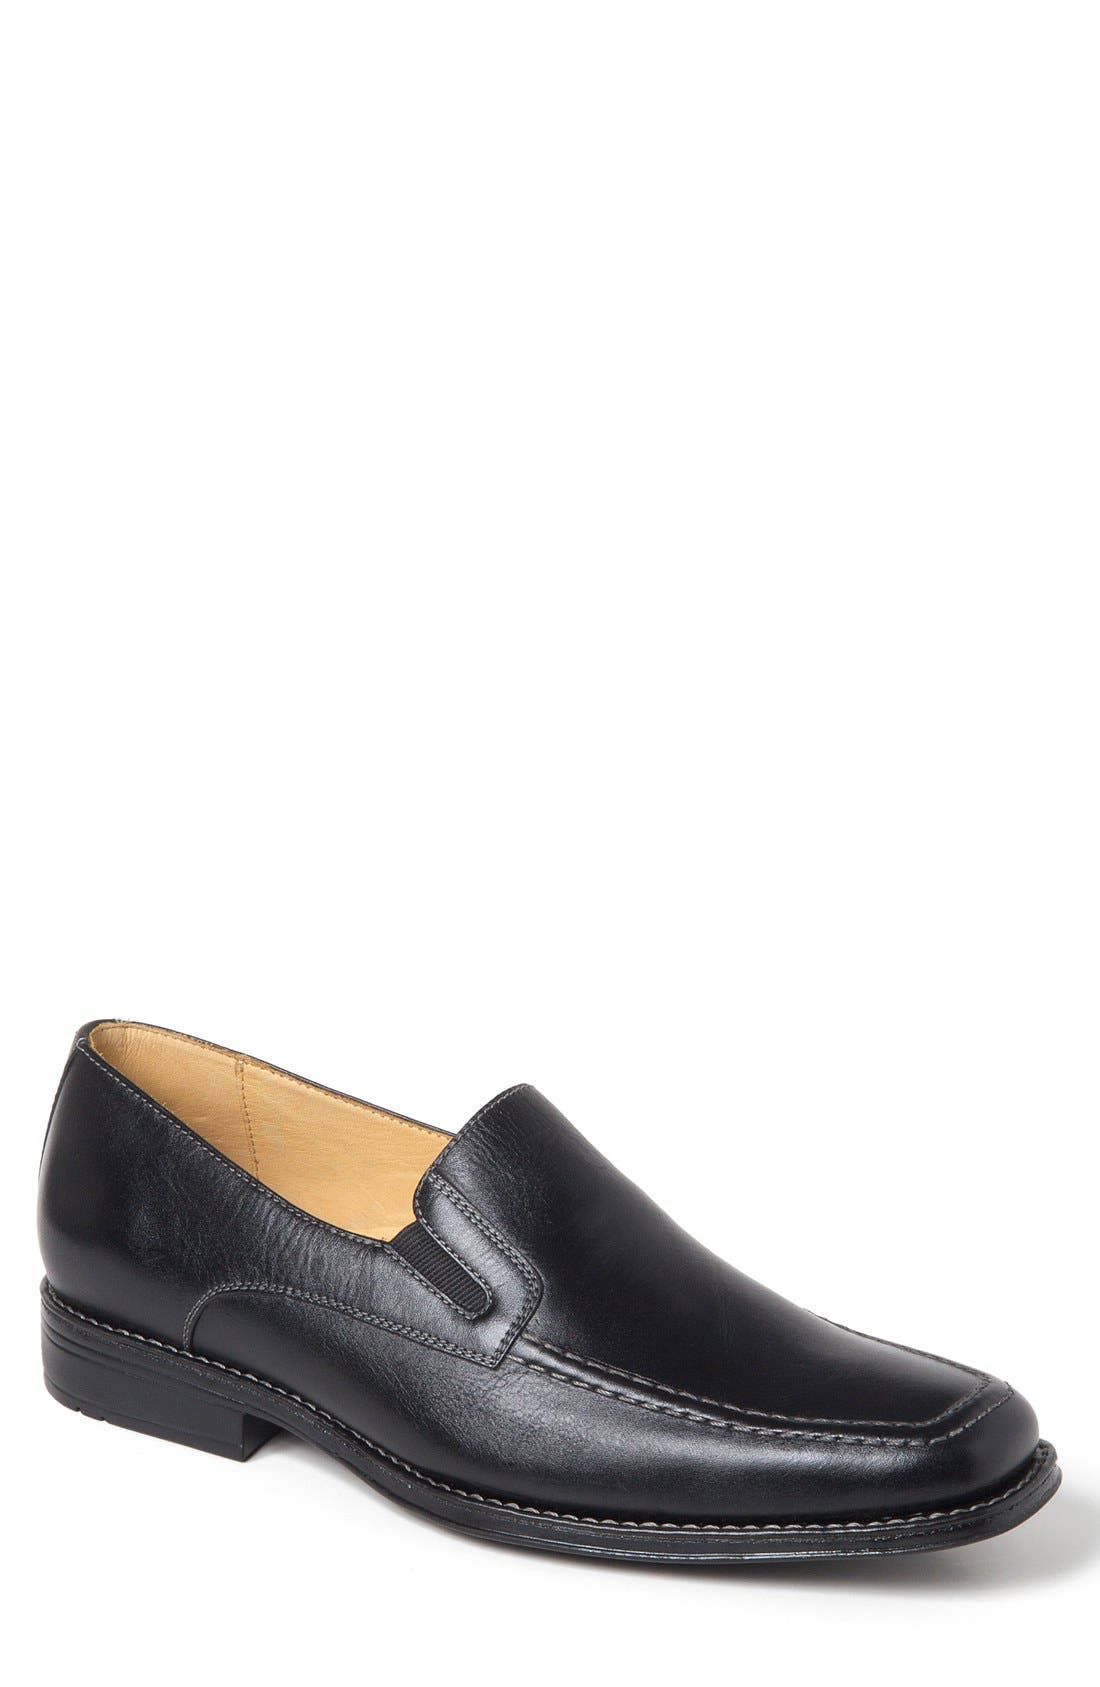 Marc Venetian Loafer,                         Main,                         color, 001